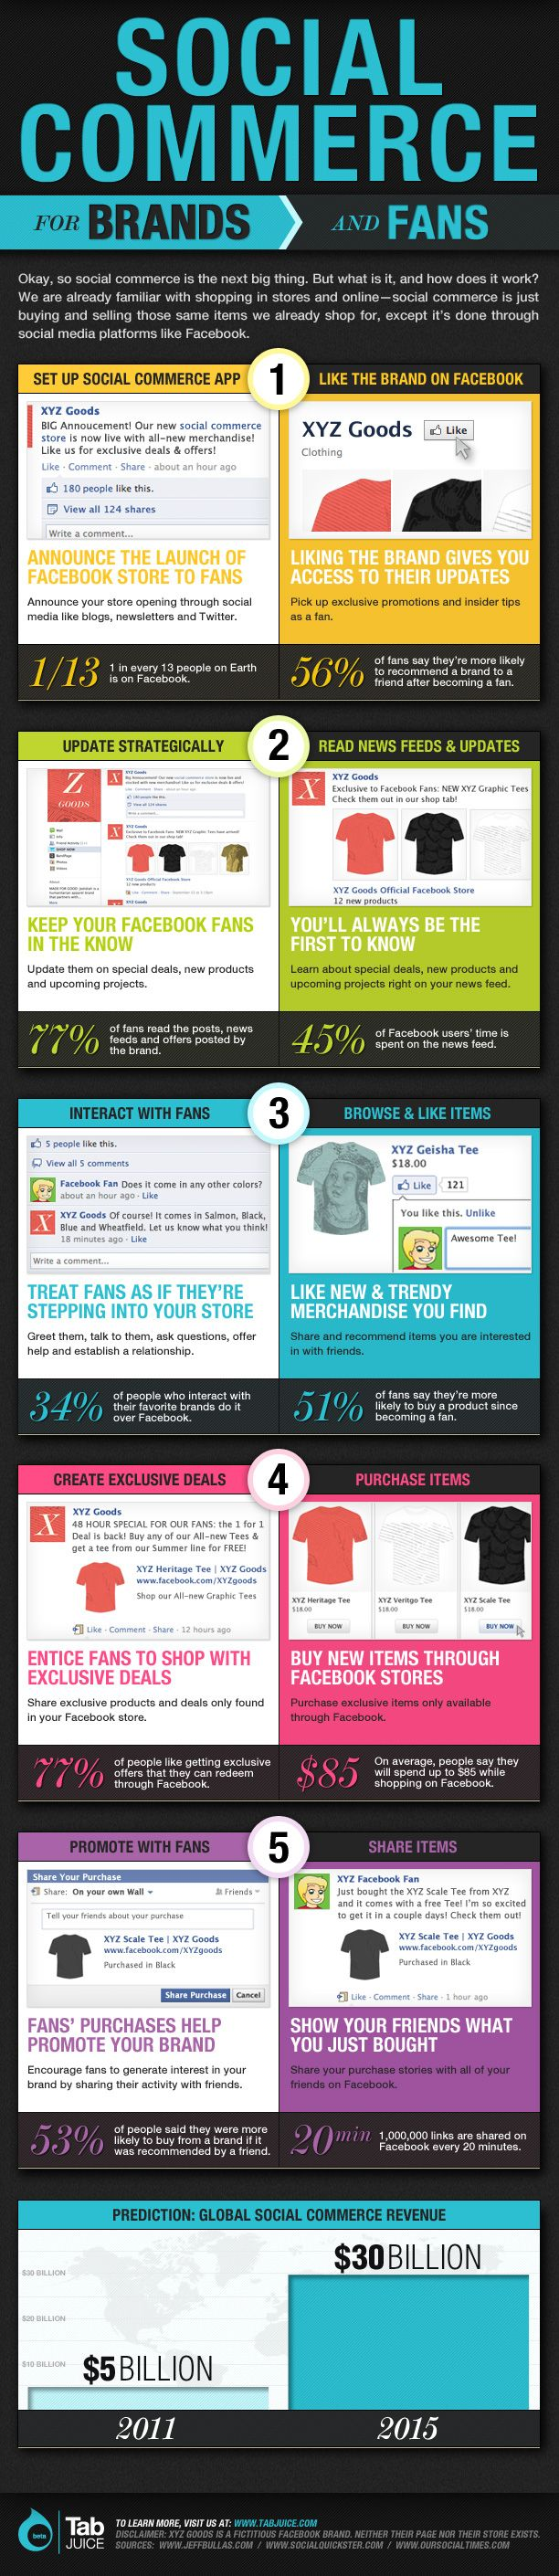 Social commerce tips